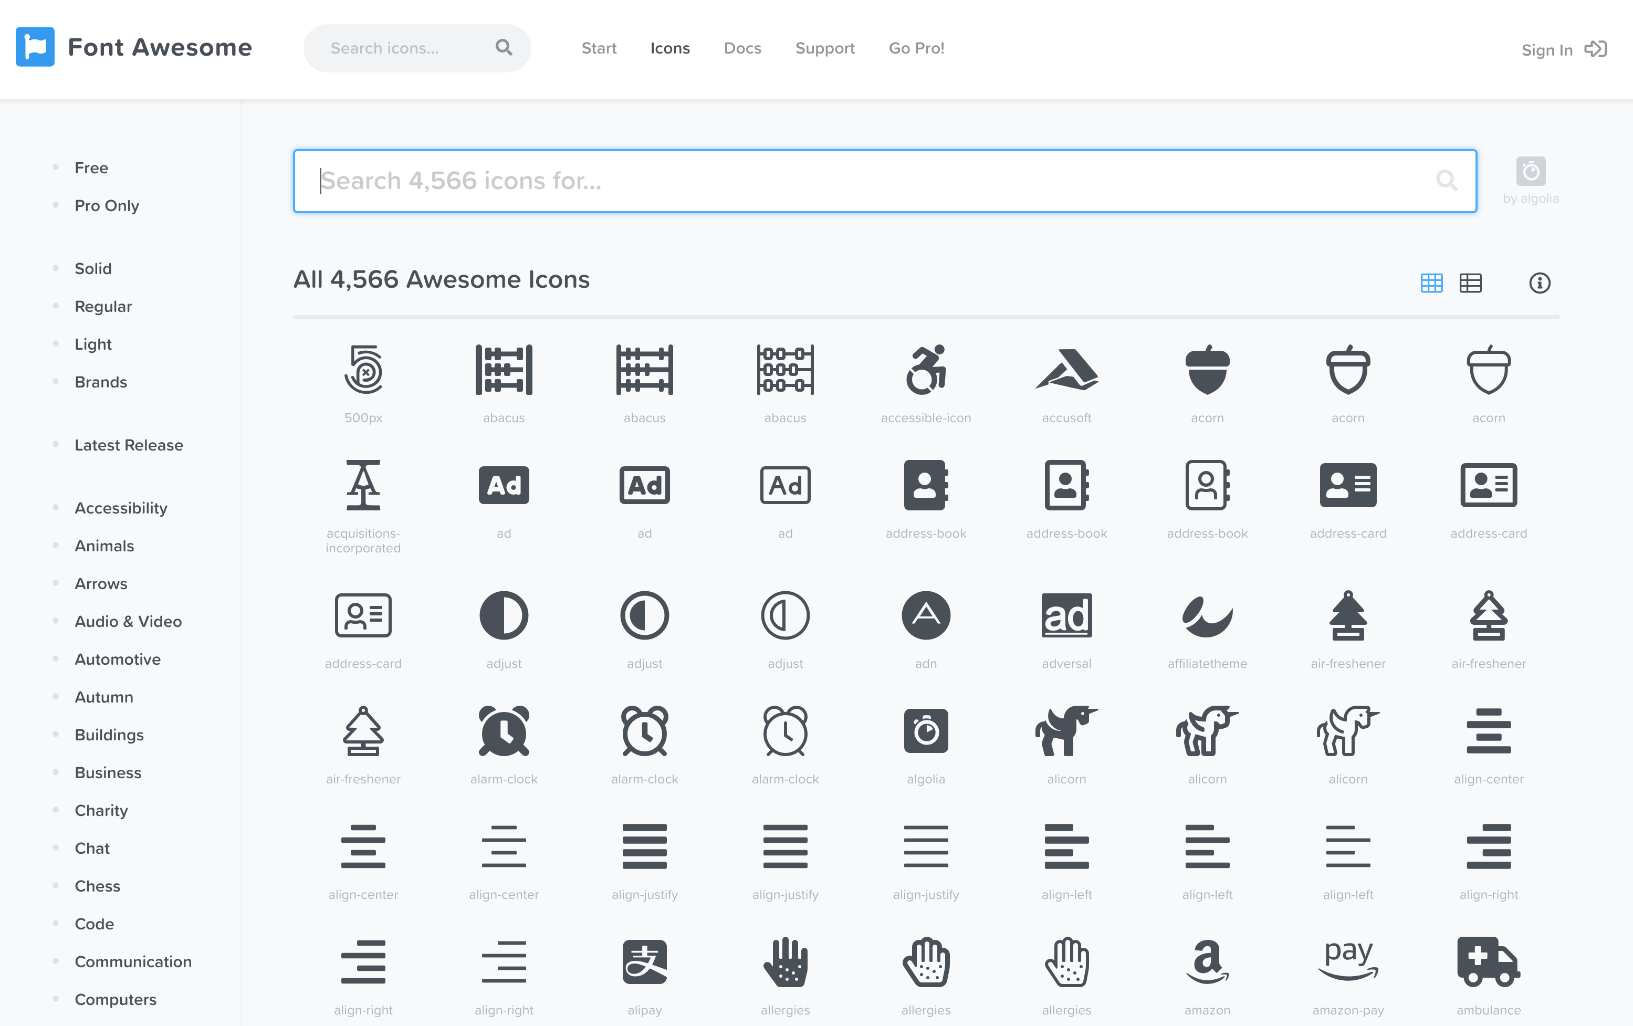 Iconos de Font Awesome